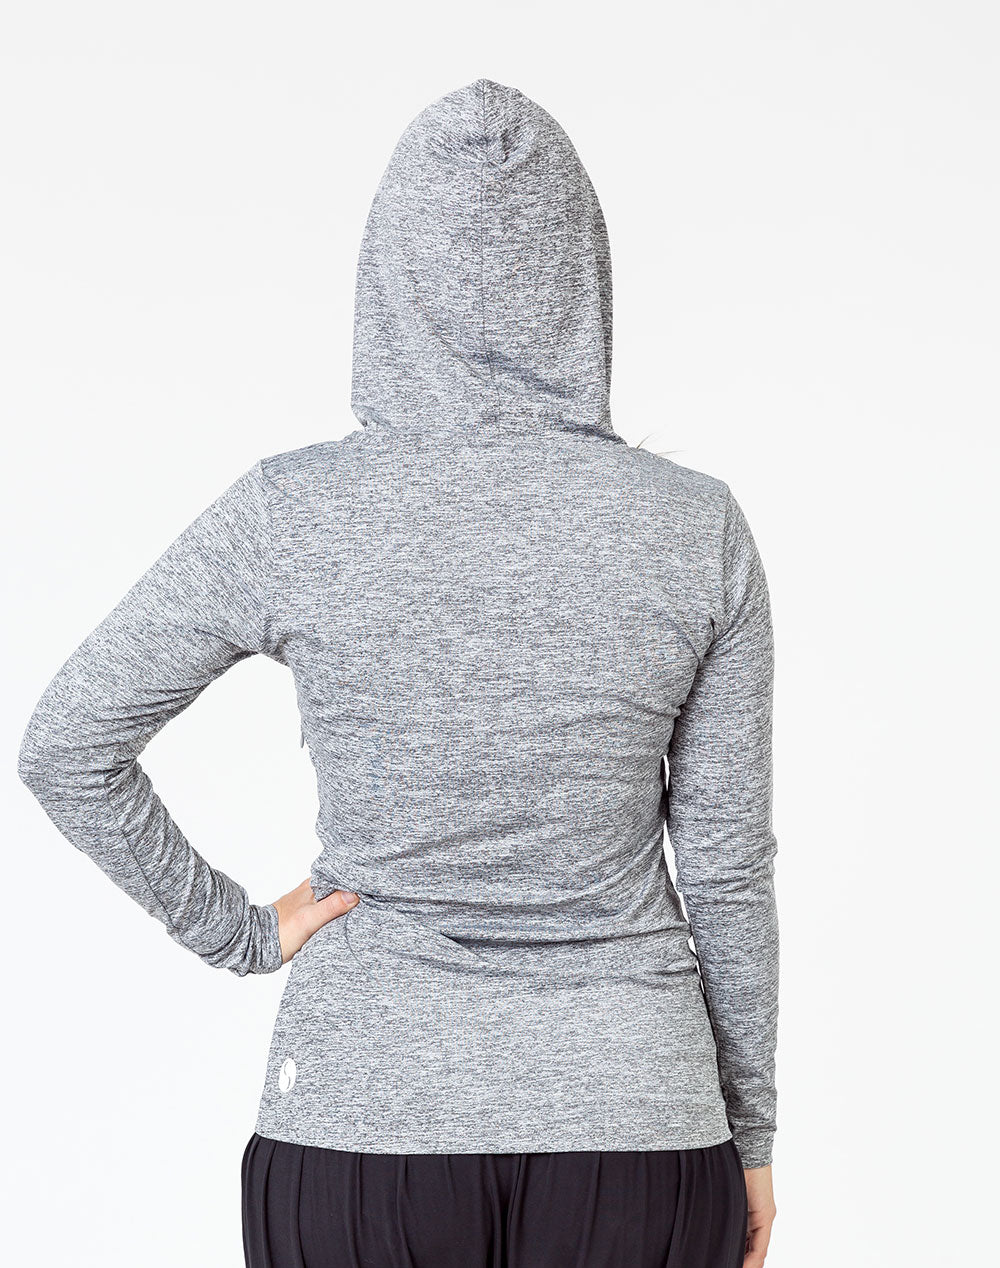 Breastfeeding Hoodie - All Day Hooded Top Grey